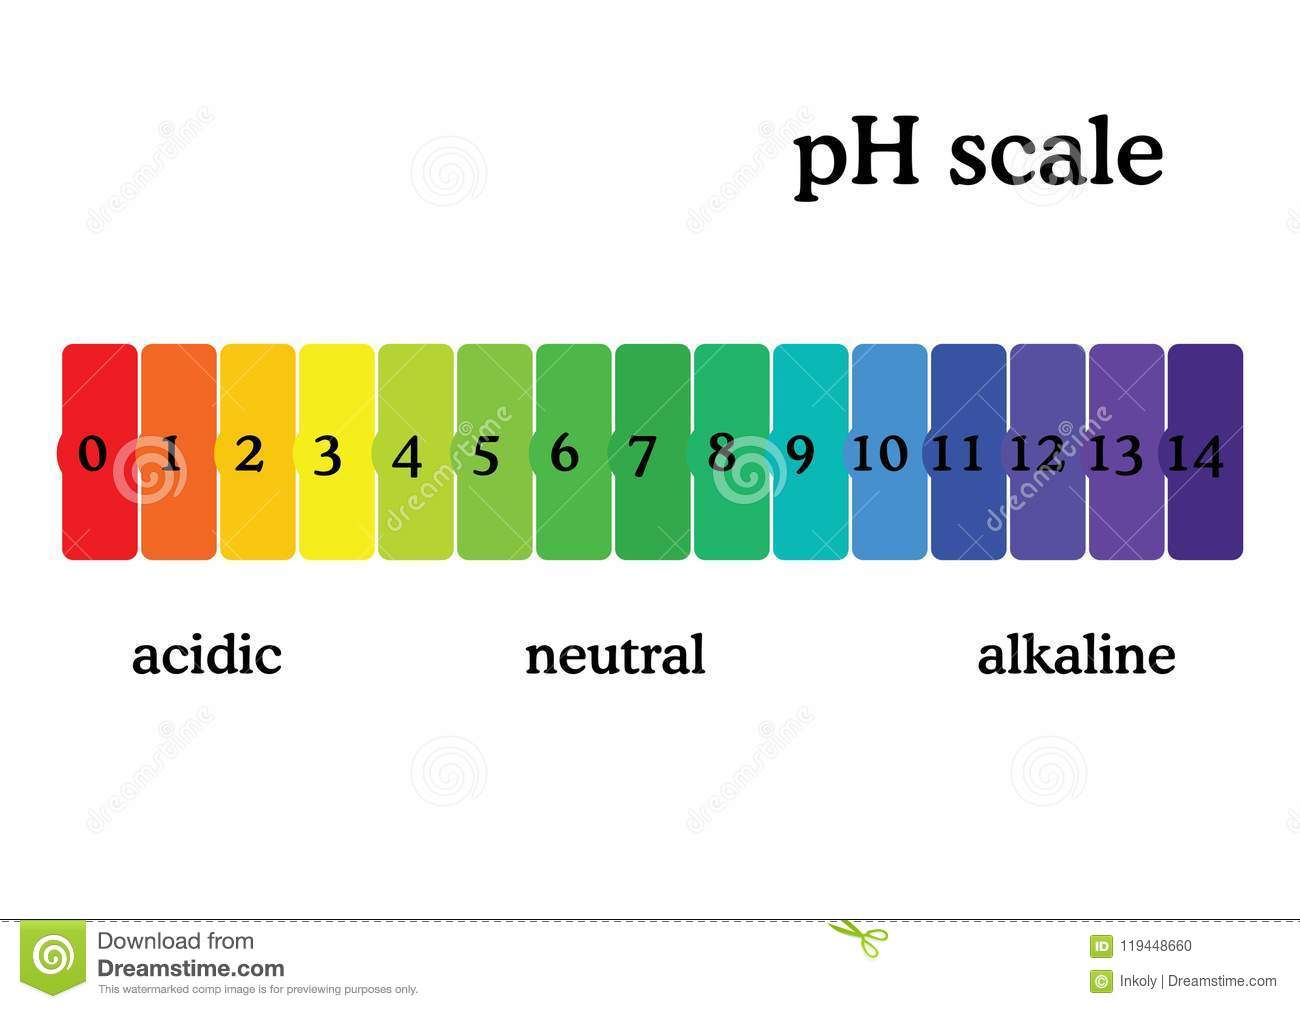 hight resolution of ph scale diagram with corresponding acidic or alcaline values universal ph indicator paper color chart